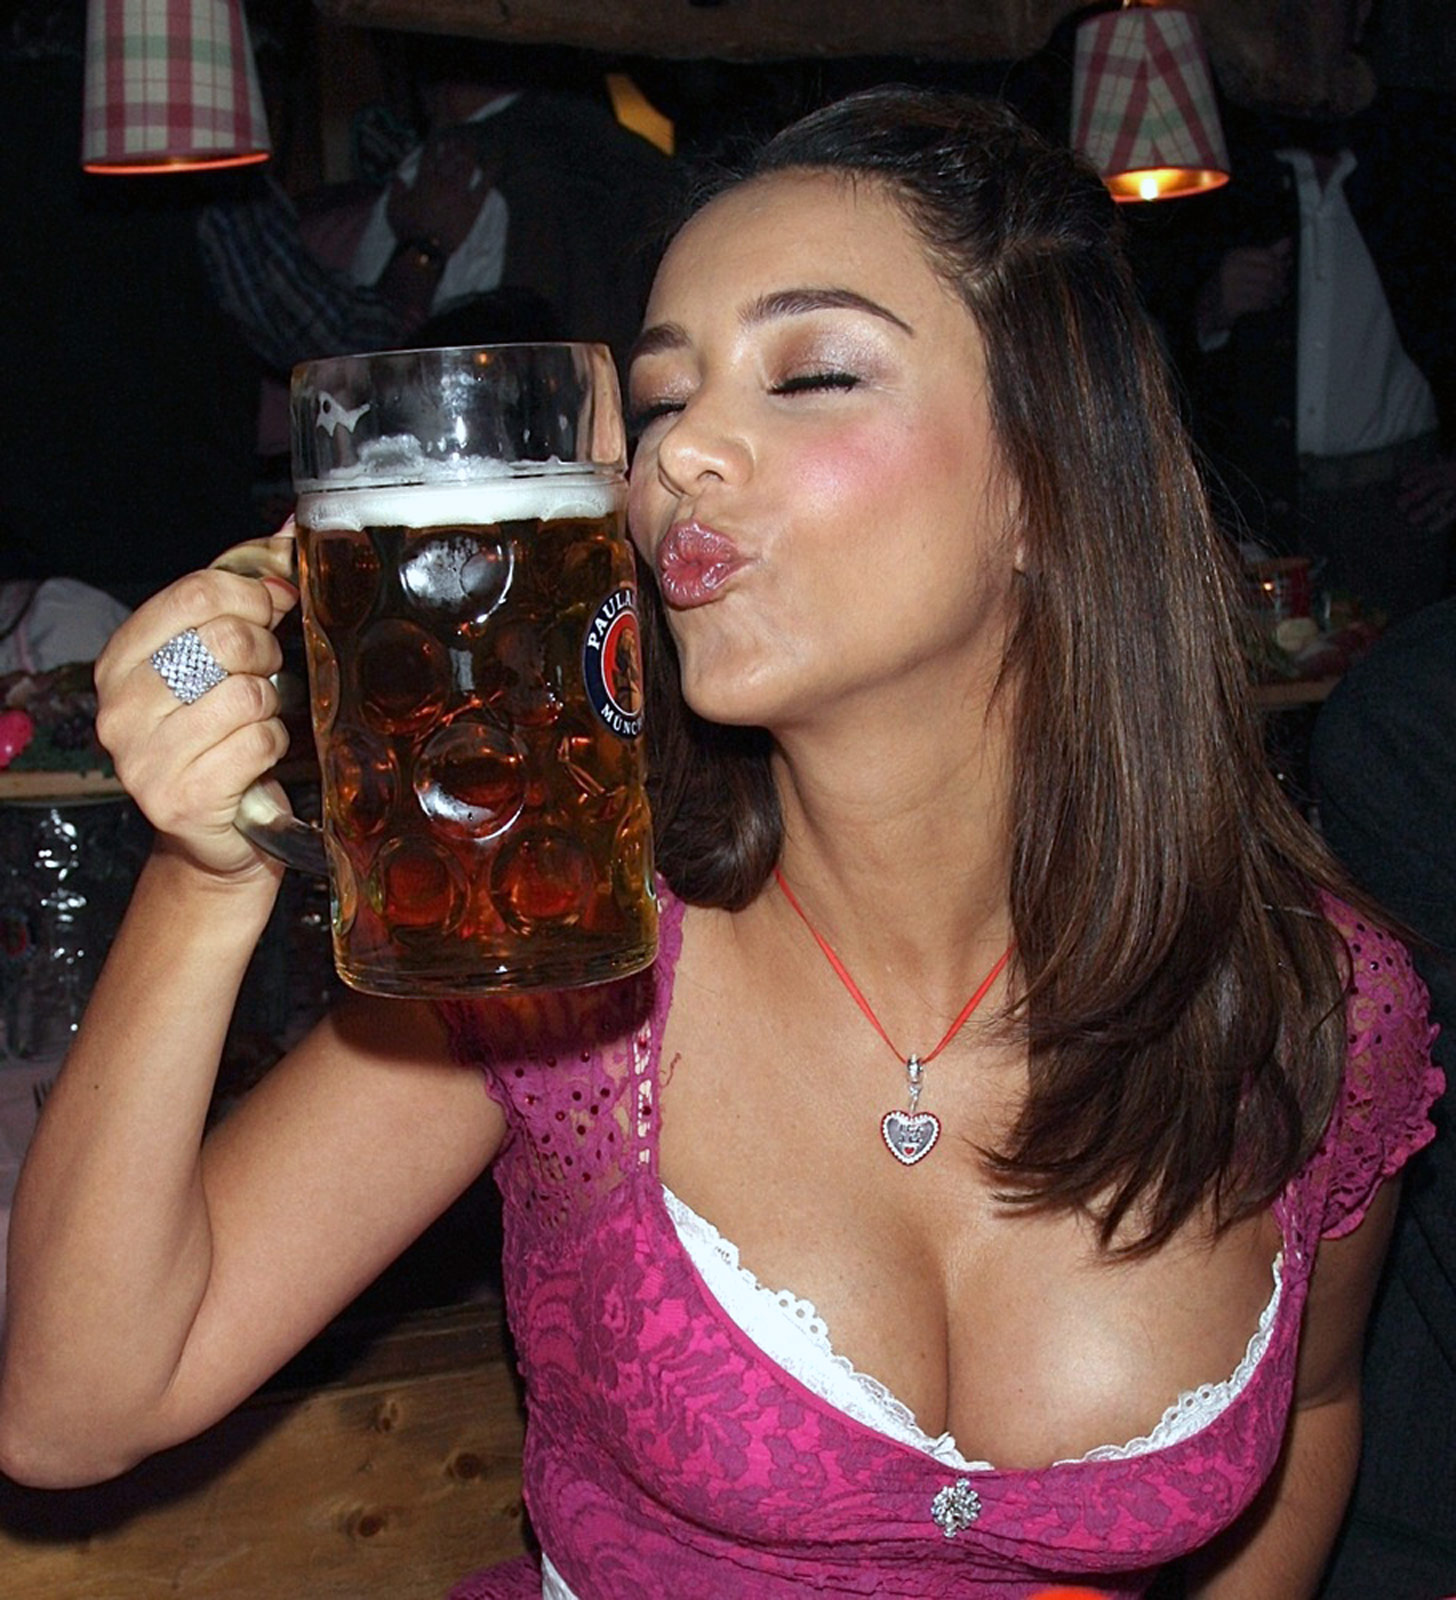 Beer makes breasts bigger